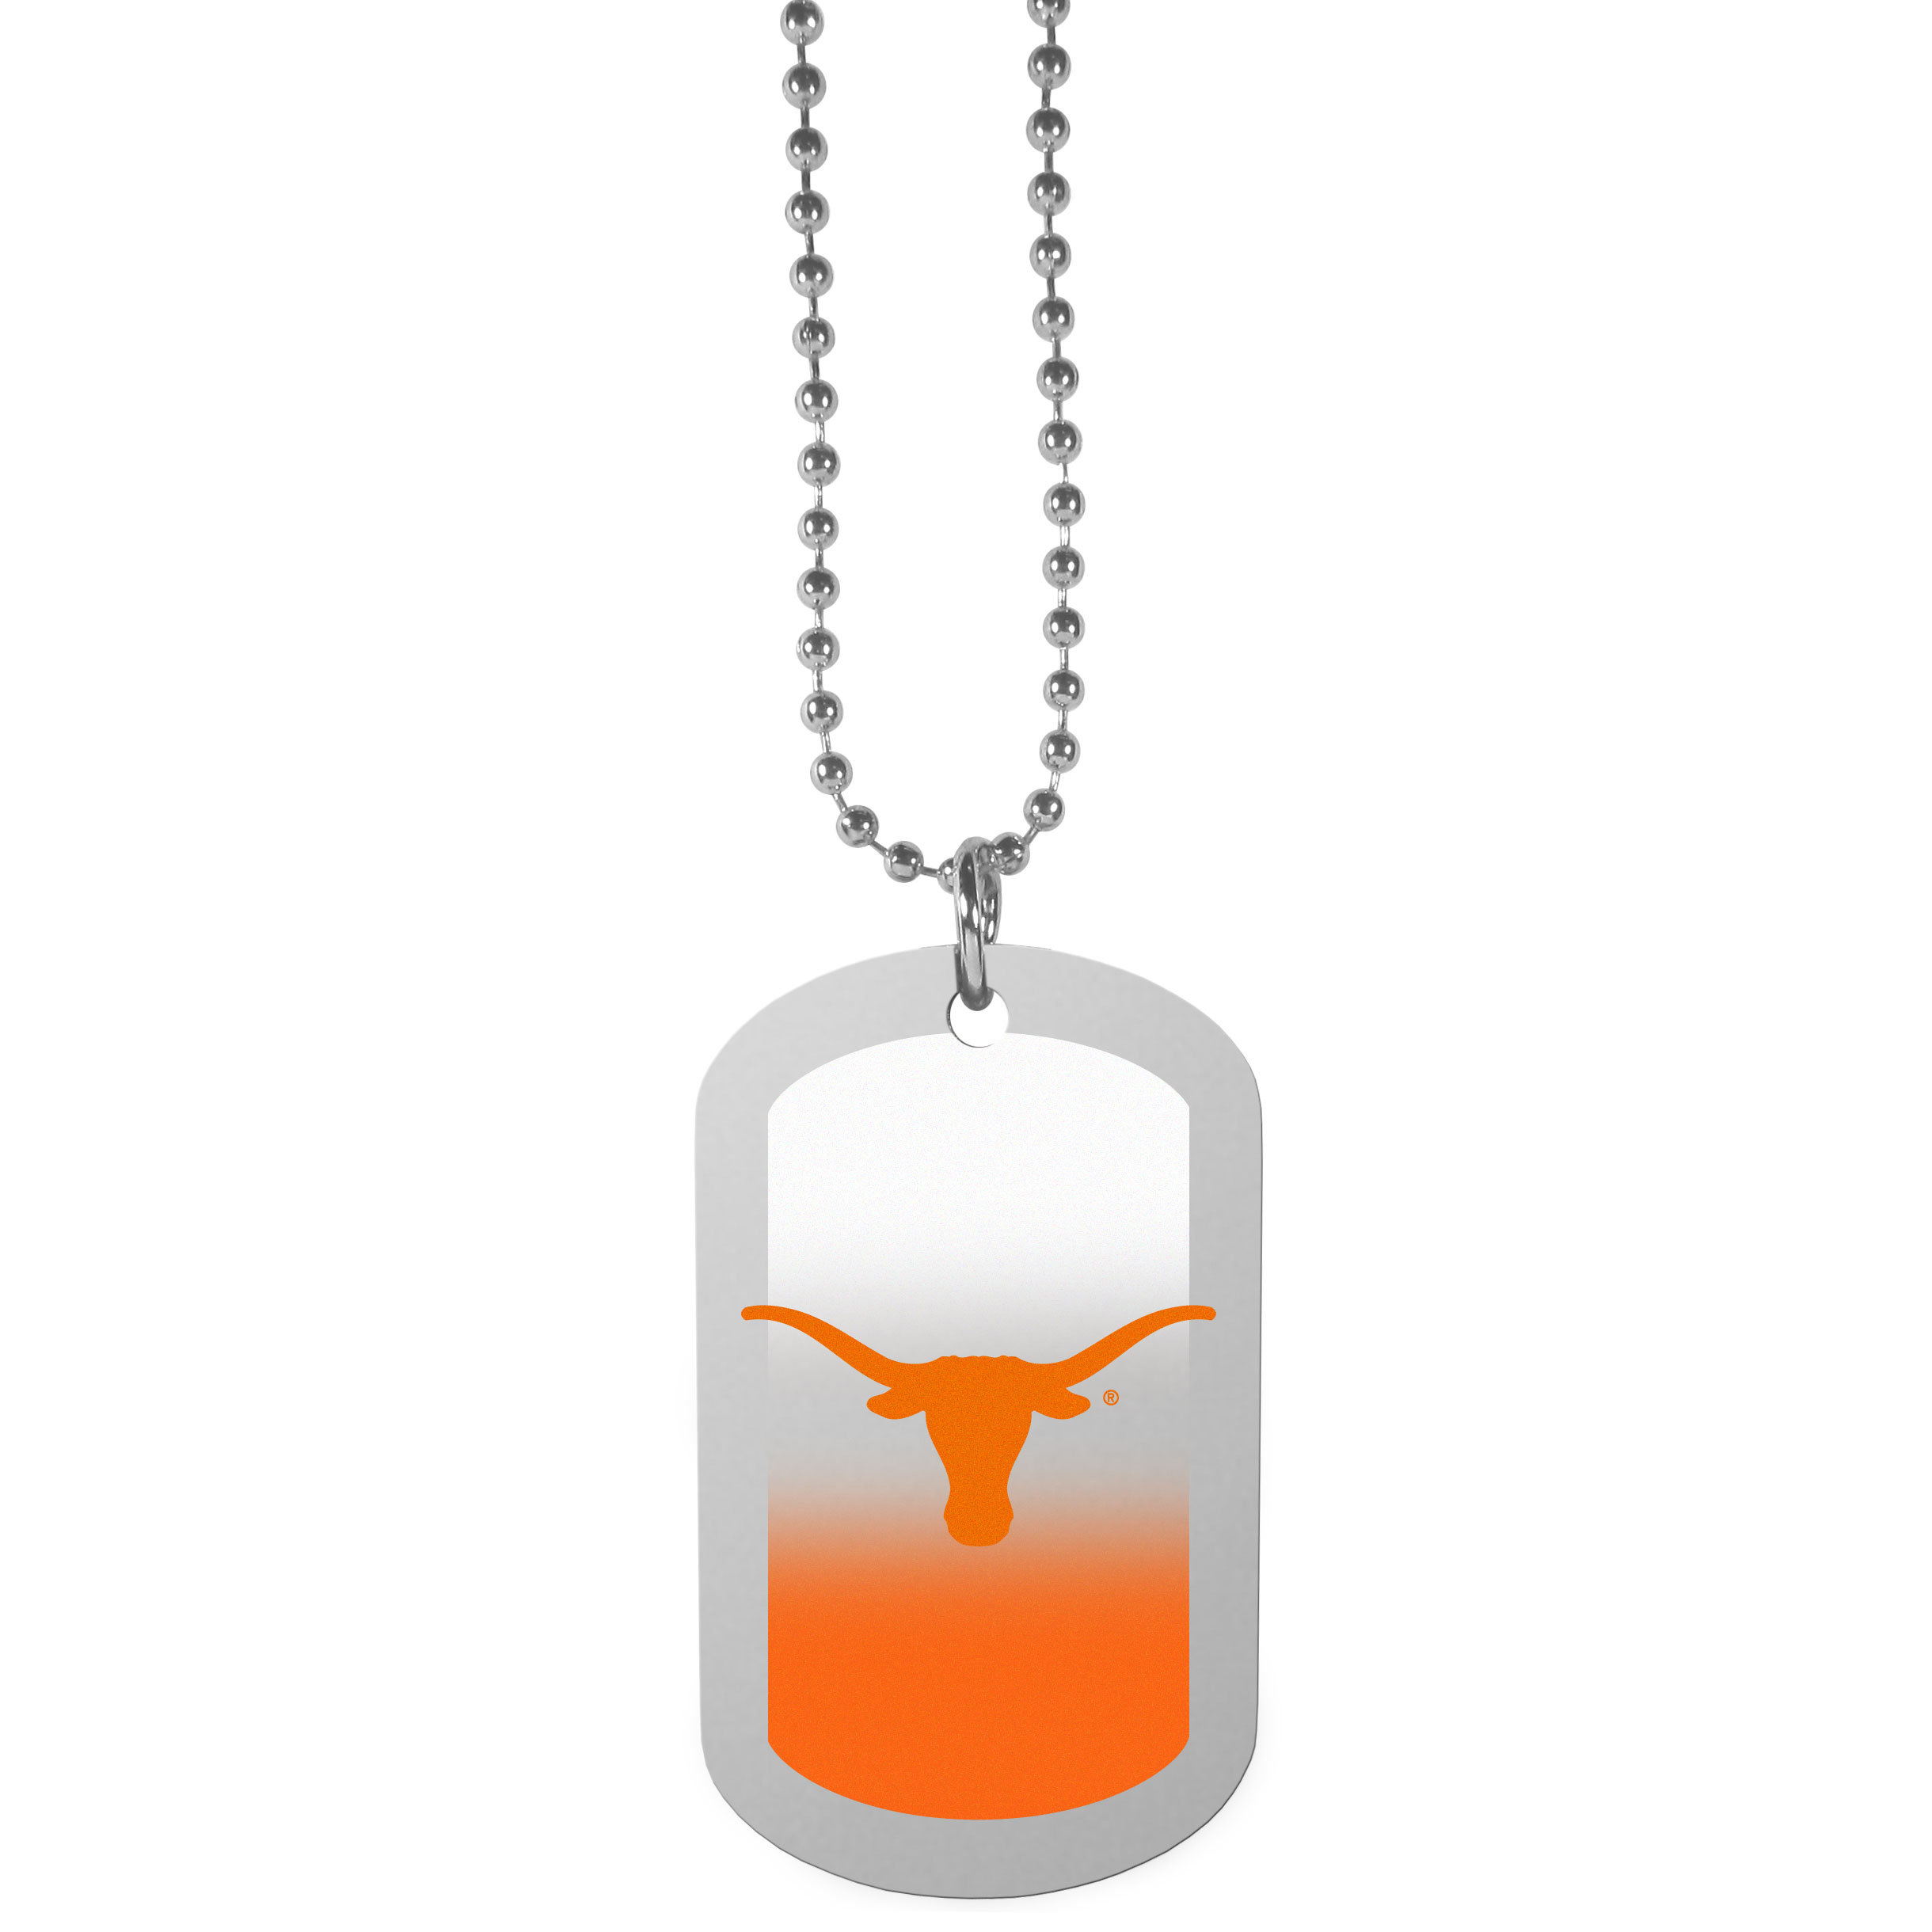 Texas Longhorns Team Tag Necklace - Dog tag necklaces are a fashion statement that is here to stay. The sporty version of the classic tag features a gradient print in team colors featuring a full color team logo over a high polish tag to create a bold and sporty look. The tag comes on a 26 inch ball chain with a ball and joint clasp. Any Texas Longhorns would be proud to wear this attractive fashion accessory.